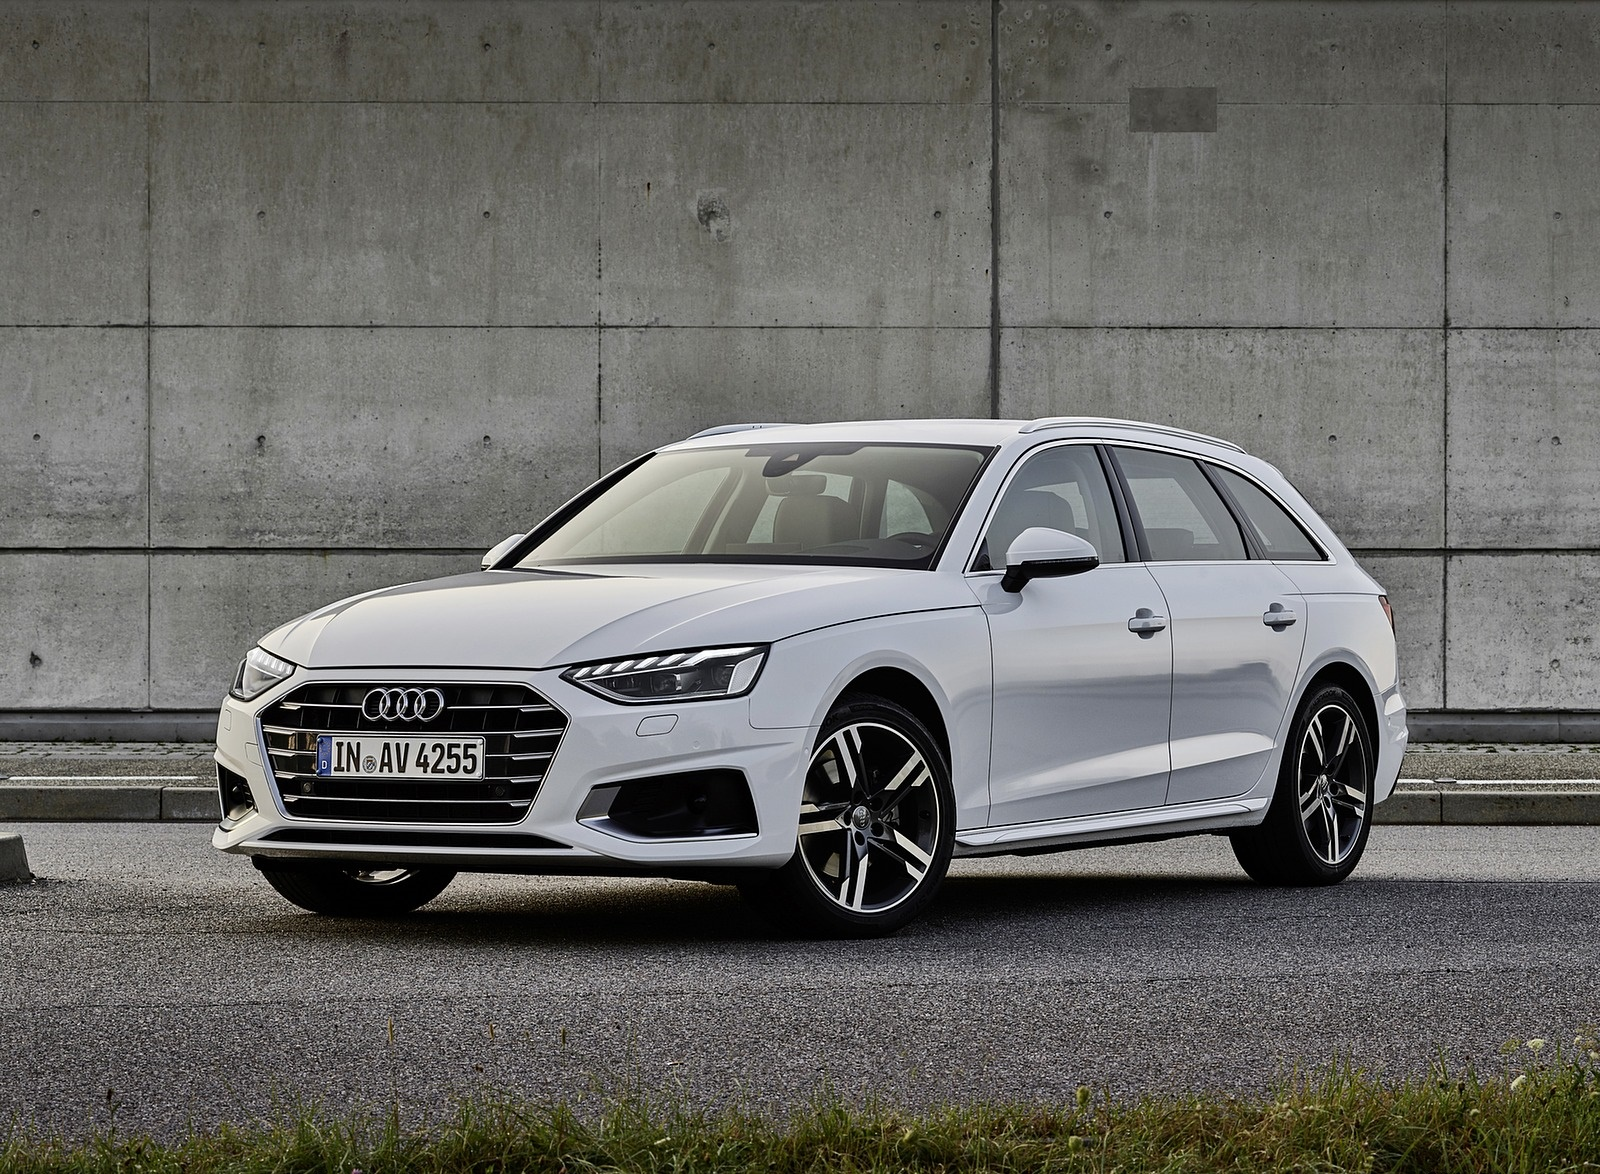 2020 Audi A4 Avant g-tron (Color: Glacier White) Front Three-Quarter Wallpapers (2)